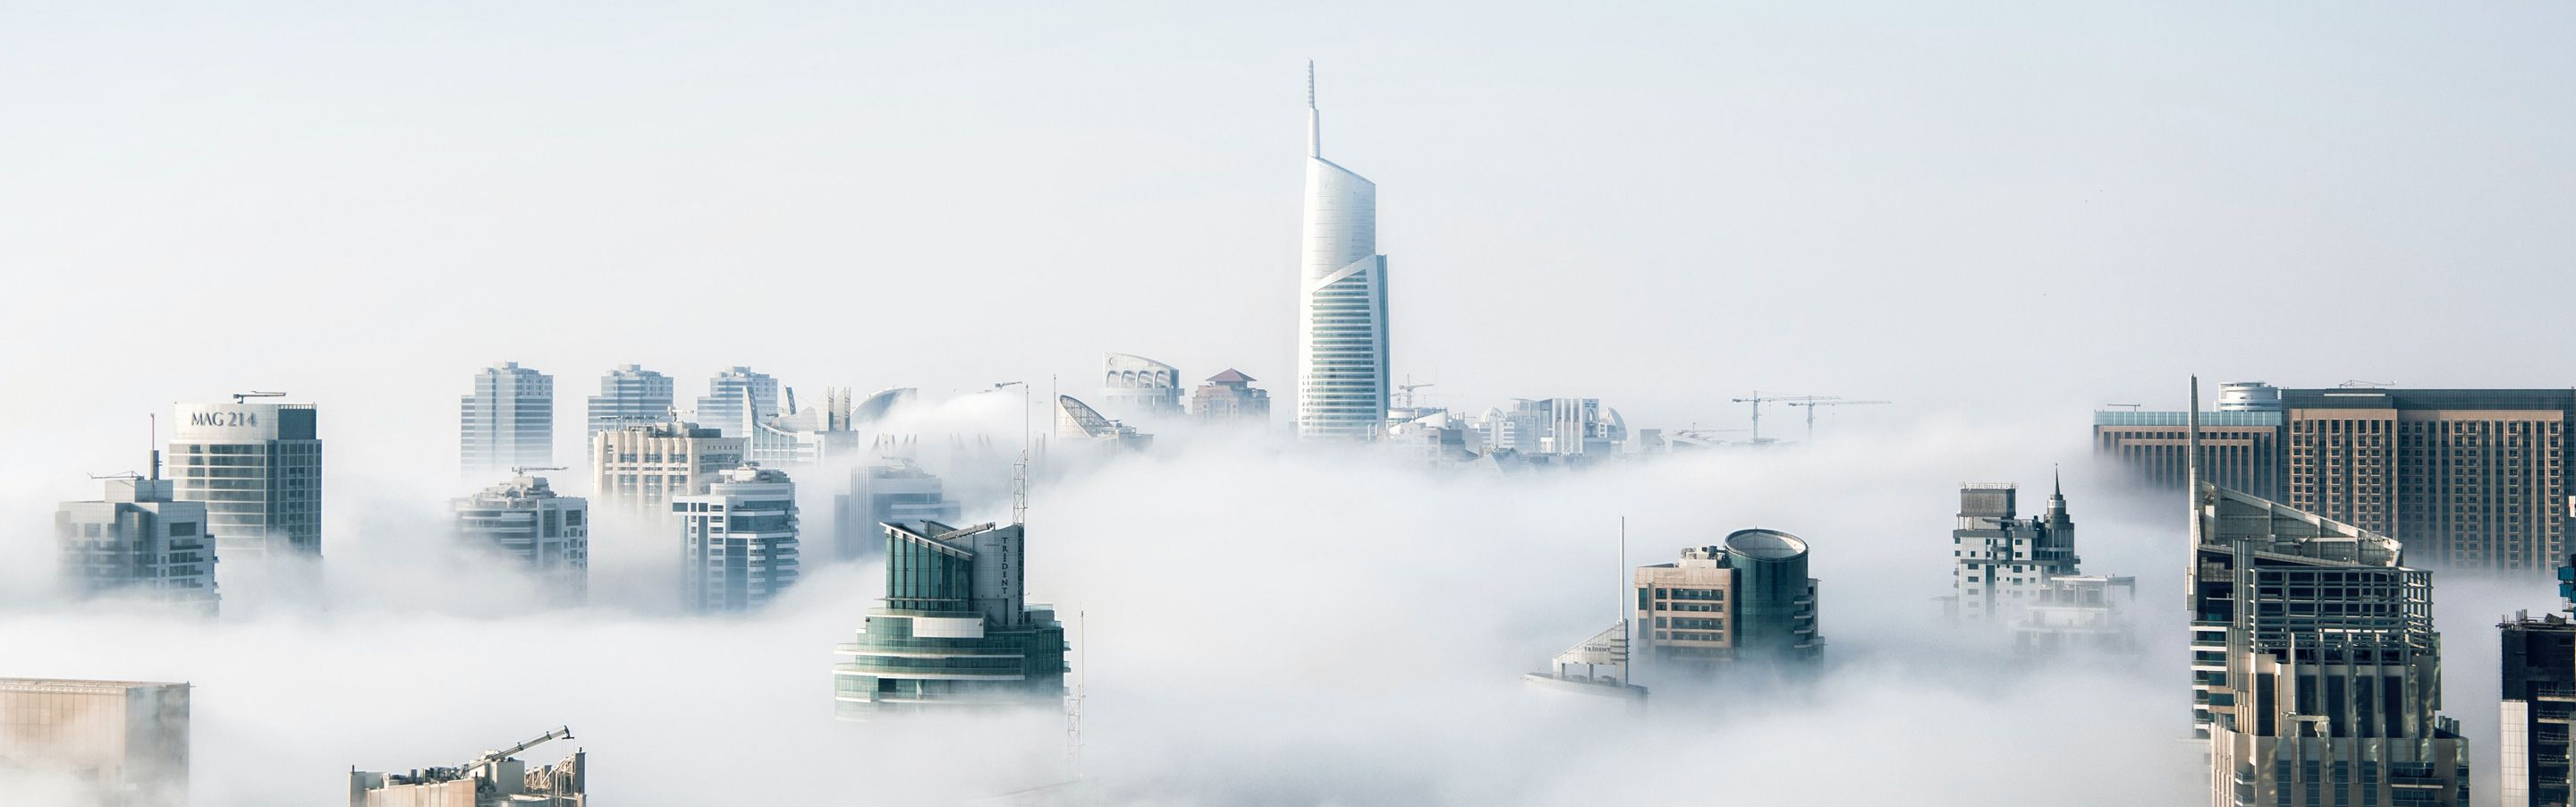 image of skyscrapers showing building a business